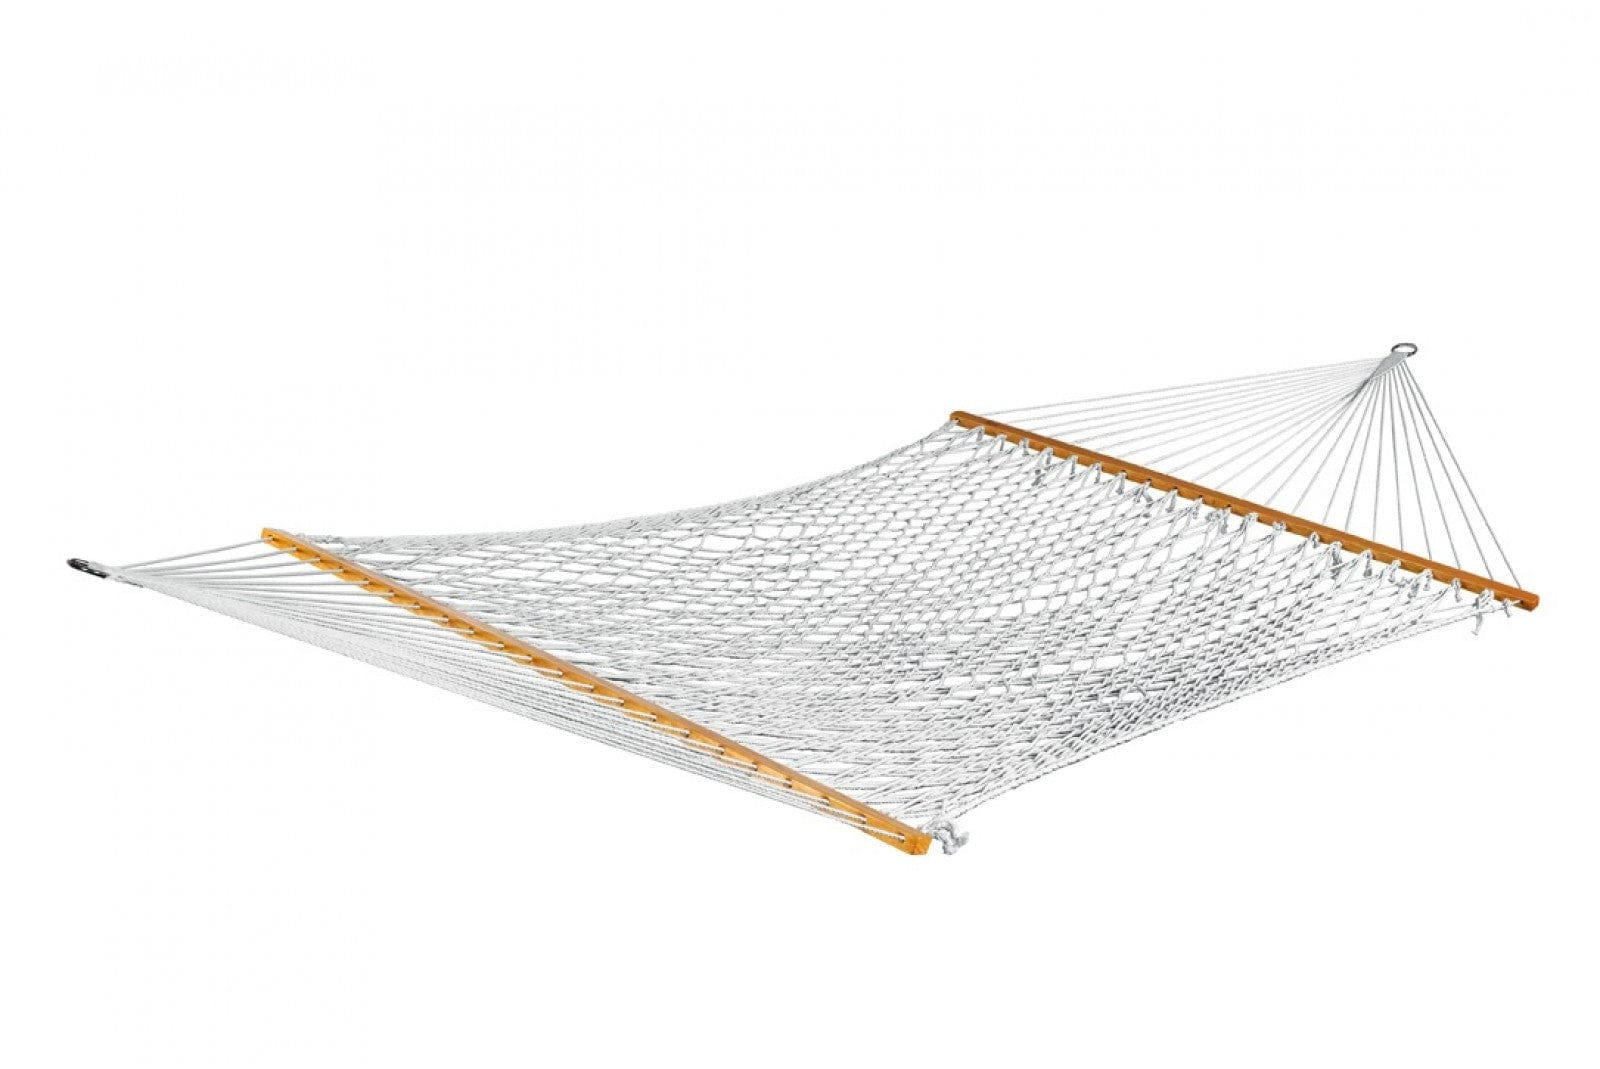 relax to products net moon accessories happiness outdoor the hammock detail night parachute mosquito garden ticket ttmmn